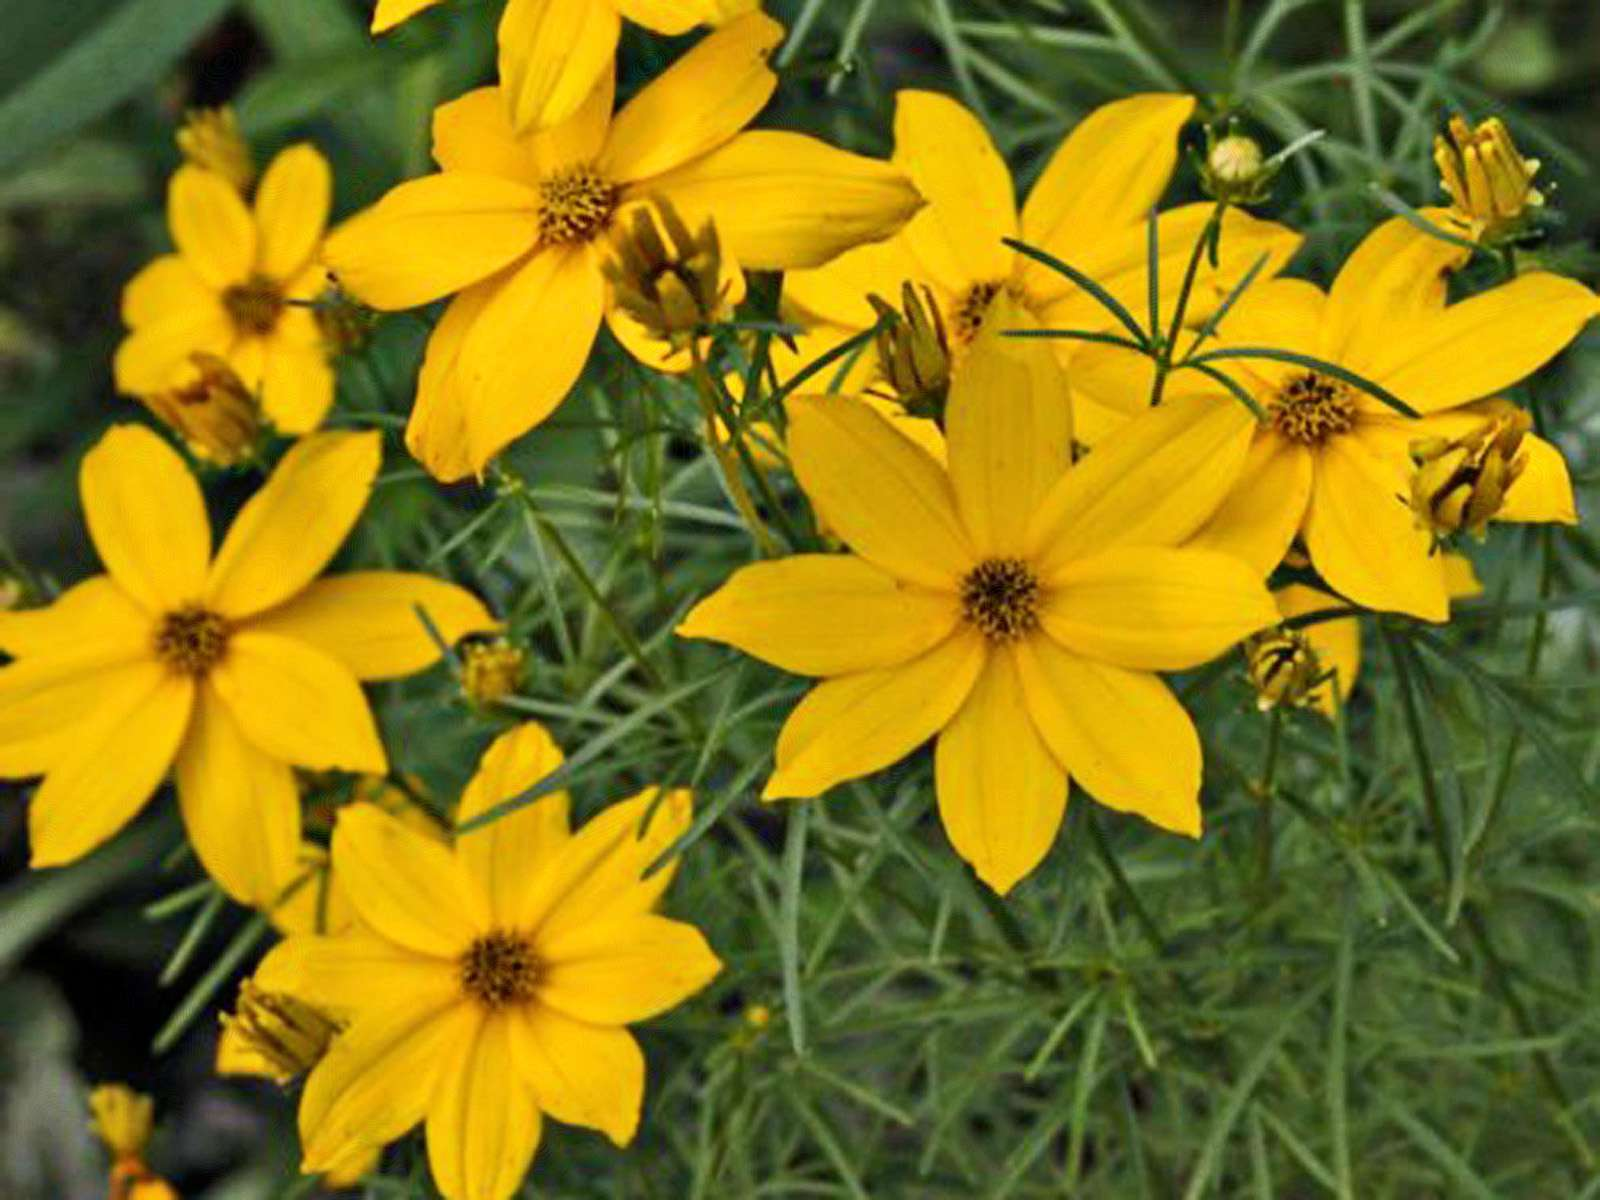 'Golden Showers' coreopsis with yellow flowers